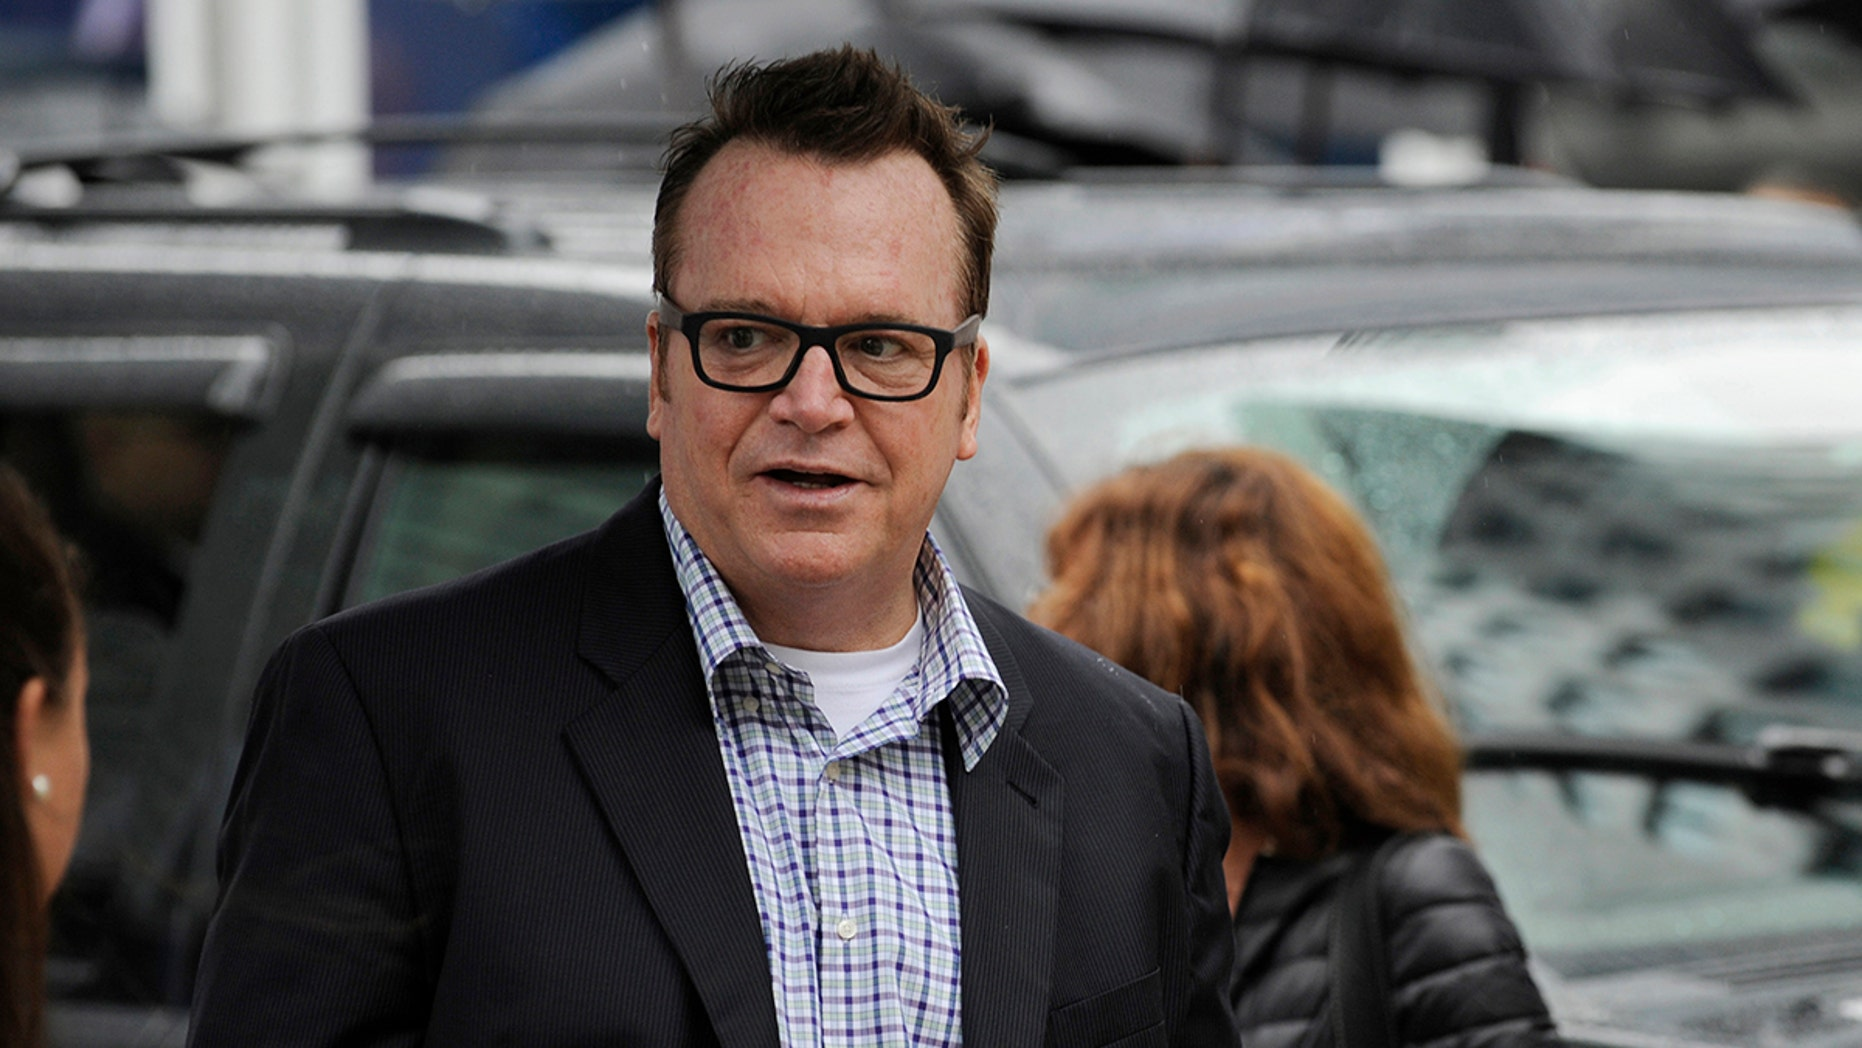 Tom Arnold to star in new anti-Trump docuseries from Vice.